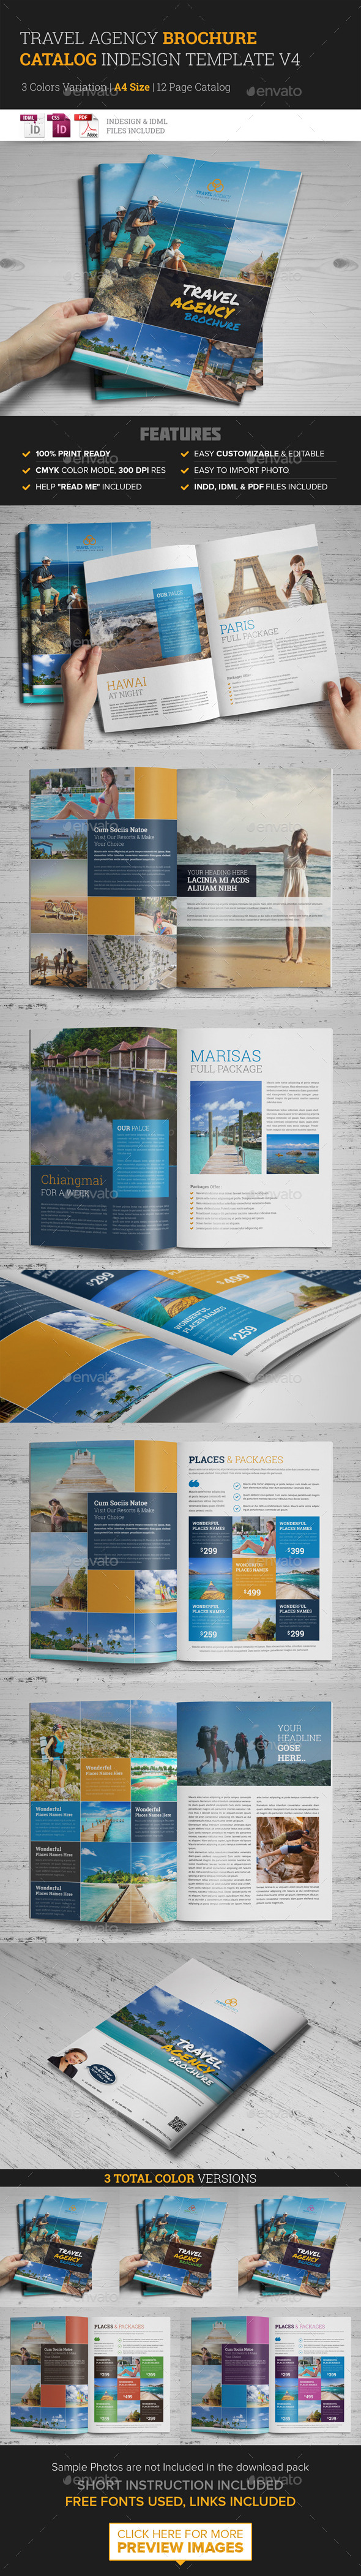 GraphicRiver Travel Agency Brochure Catalog InDesign Template 4 10398276